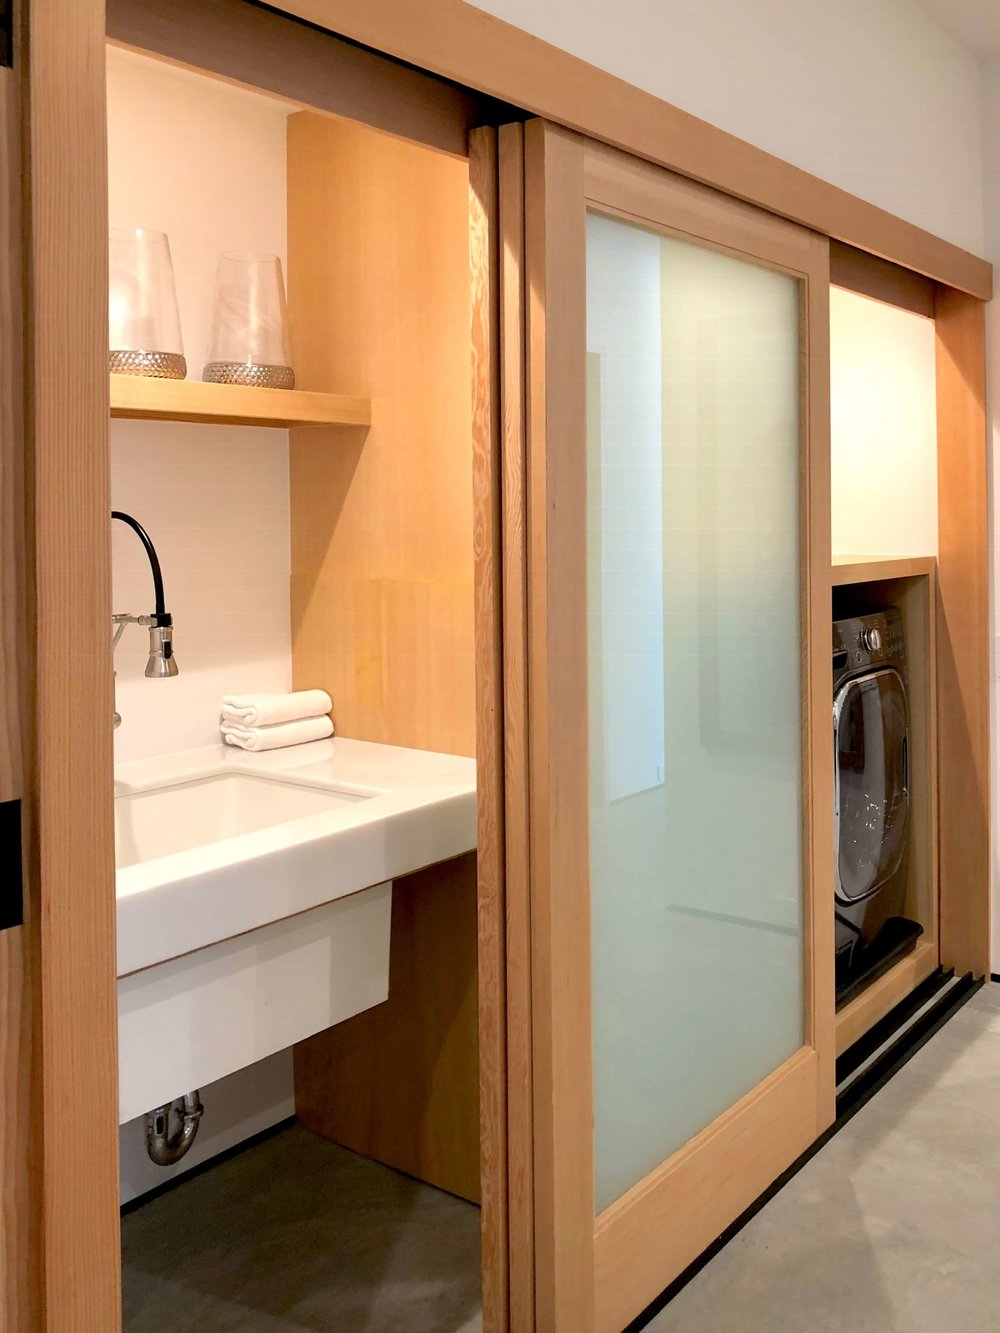 Laundry with wood framed sliding doors in California contemporary home, Dwell on Design's Fall Home Tour, Designer: Vitus Matare #laundryroom #laundryroomideas